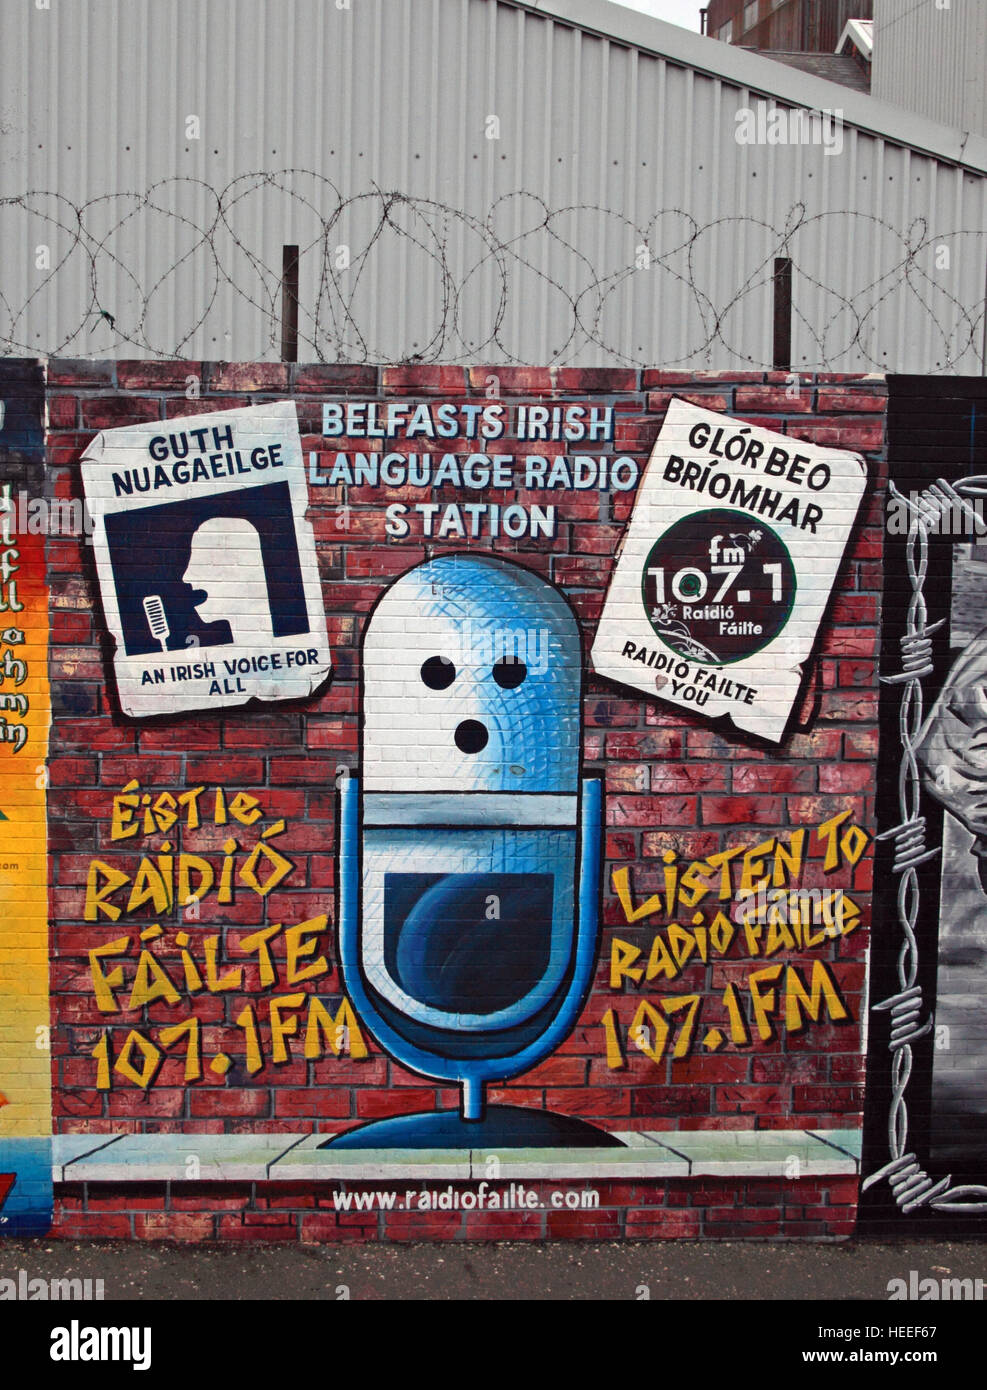 Belfast Falls Rd Republican Mural - radio Guth Nuagaeil,Irish voice for all Radio Failte - Stock Image